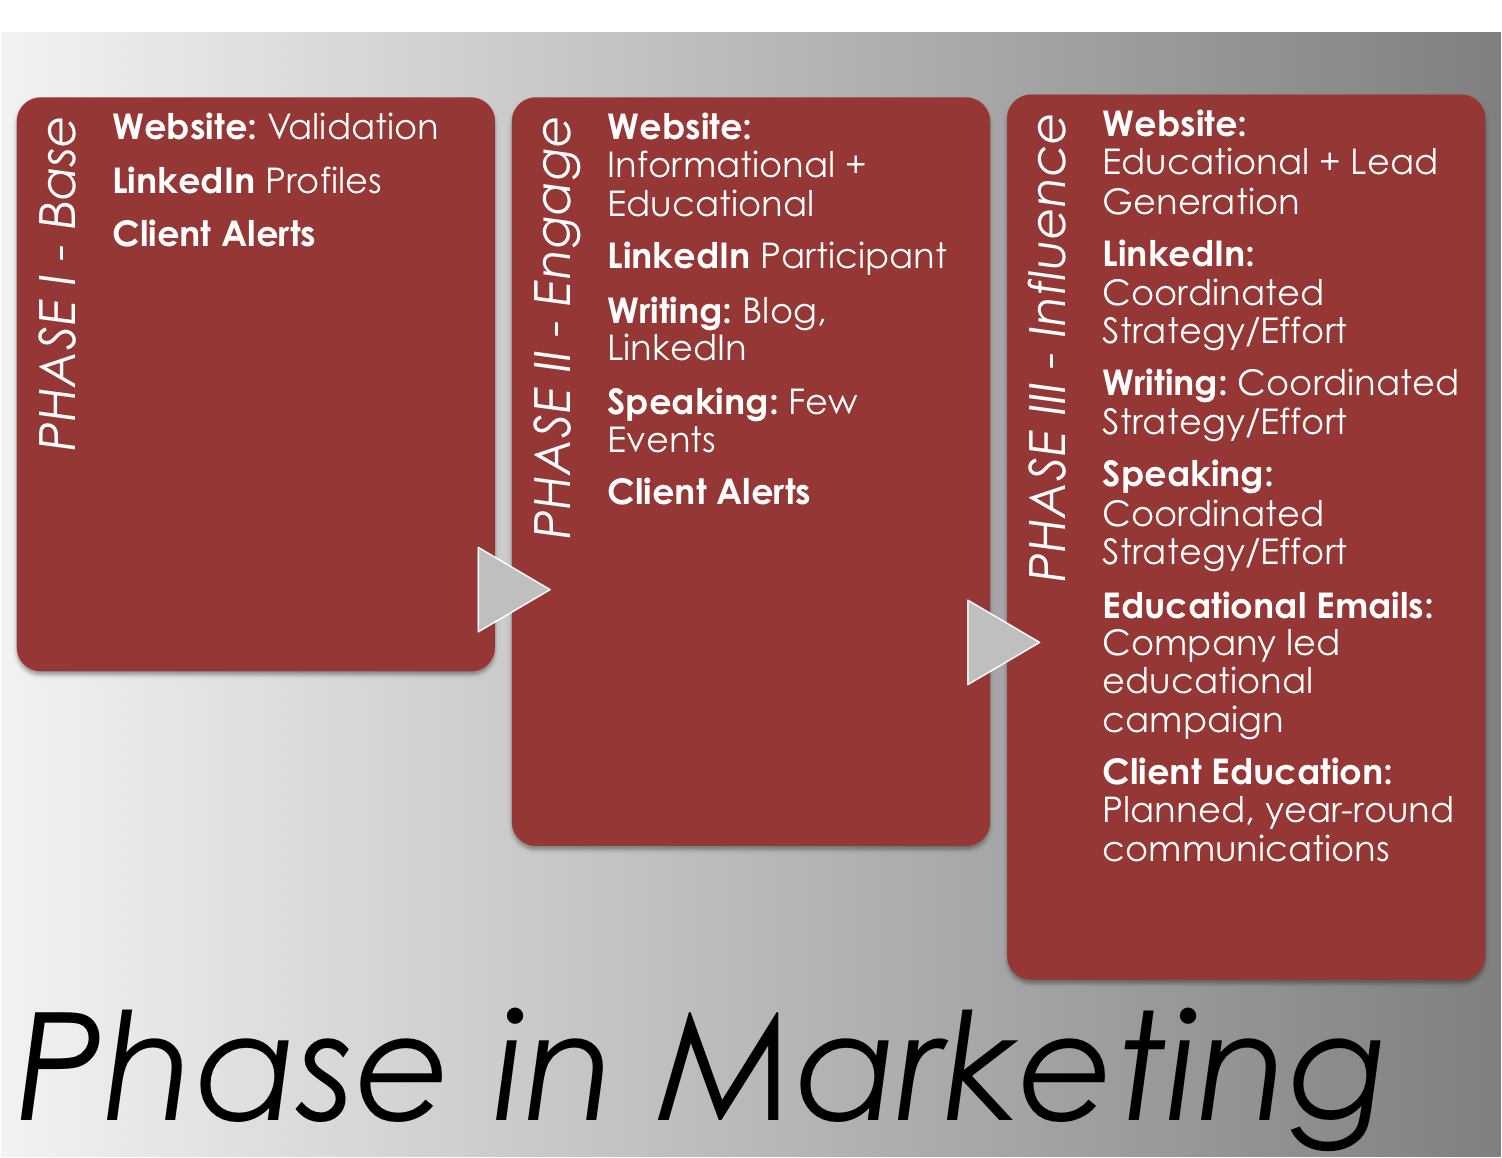 Marketing_Phases.png